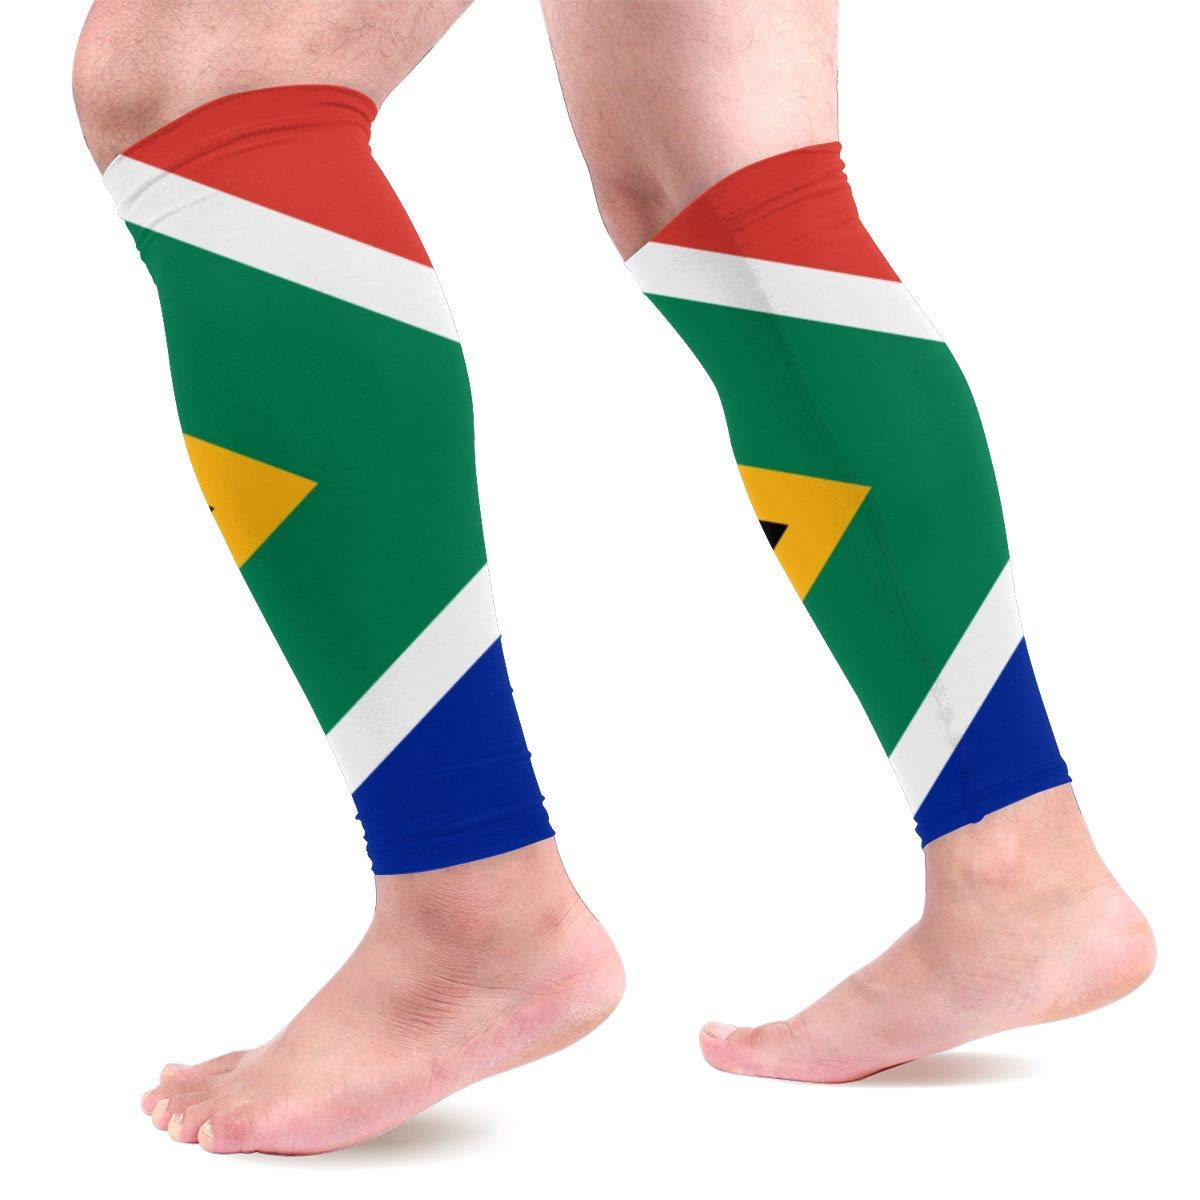 nxnx South-African-Flag Sports Compression Calf Sleeve Men and Women Relieve Pain Calf Sleeve Movement Recovery Sleeve Pair